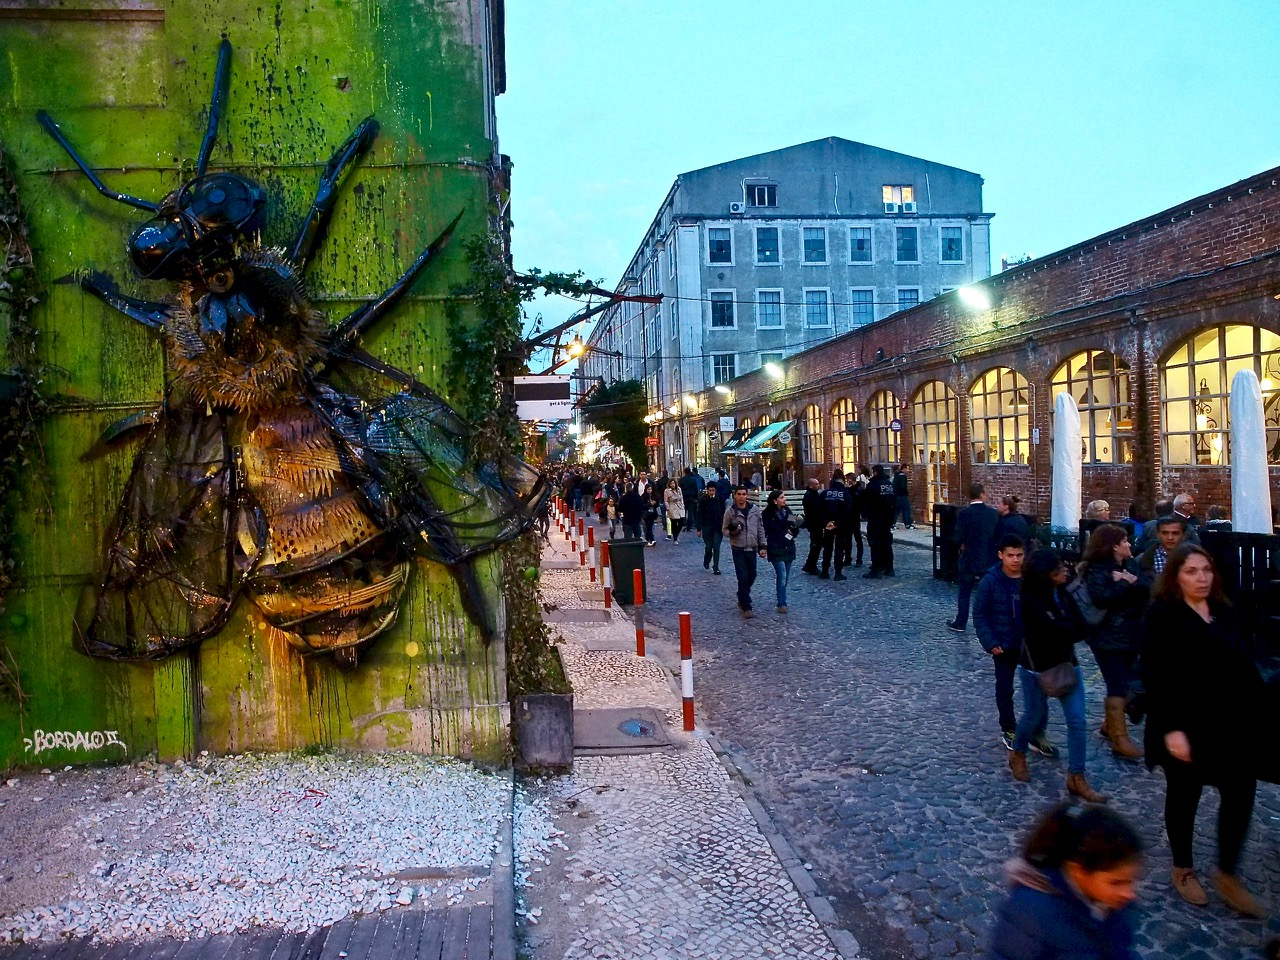 Wall art with large bumble bee and a street with tons of people at dusk at LX Factory